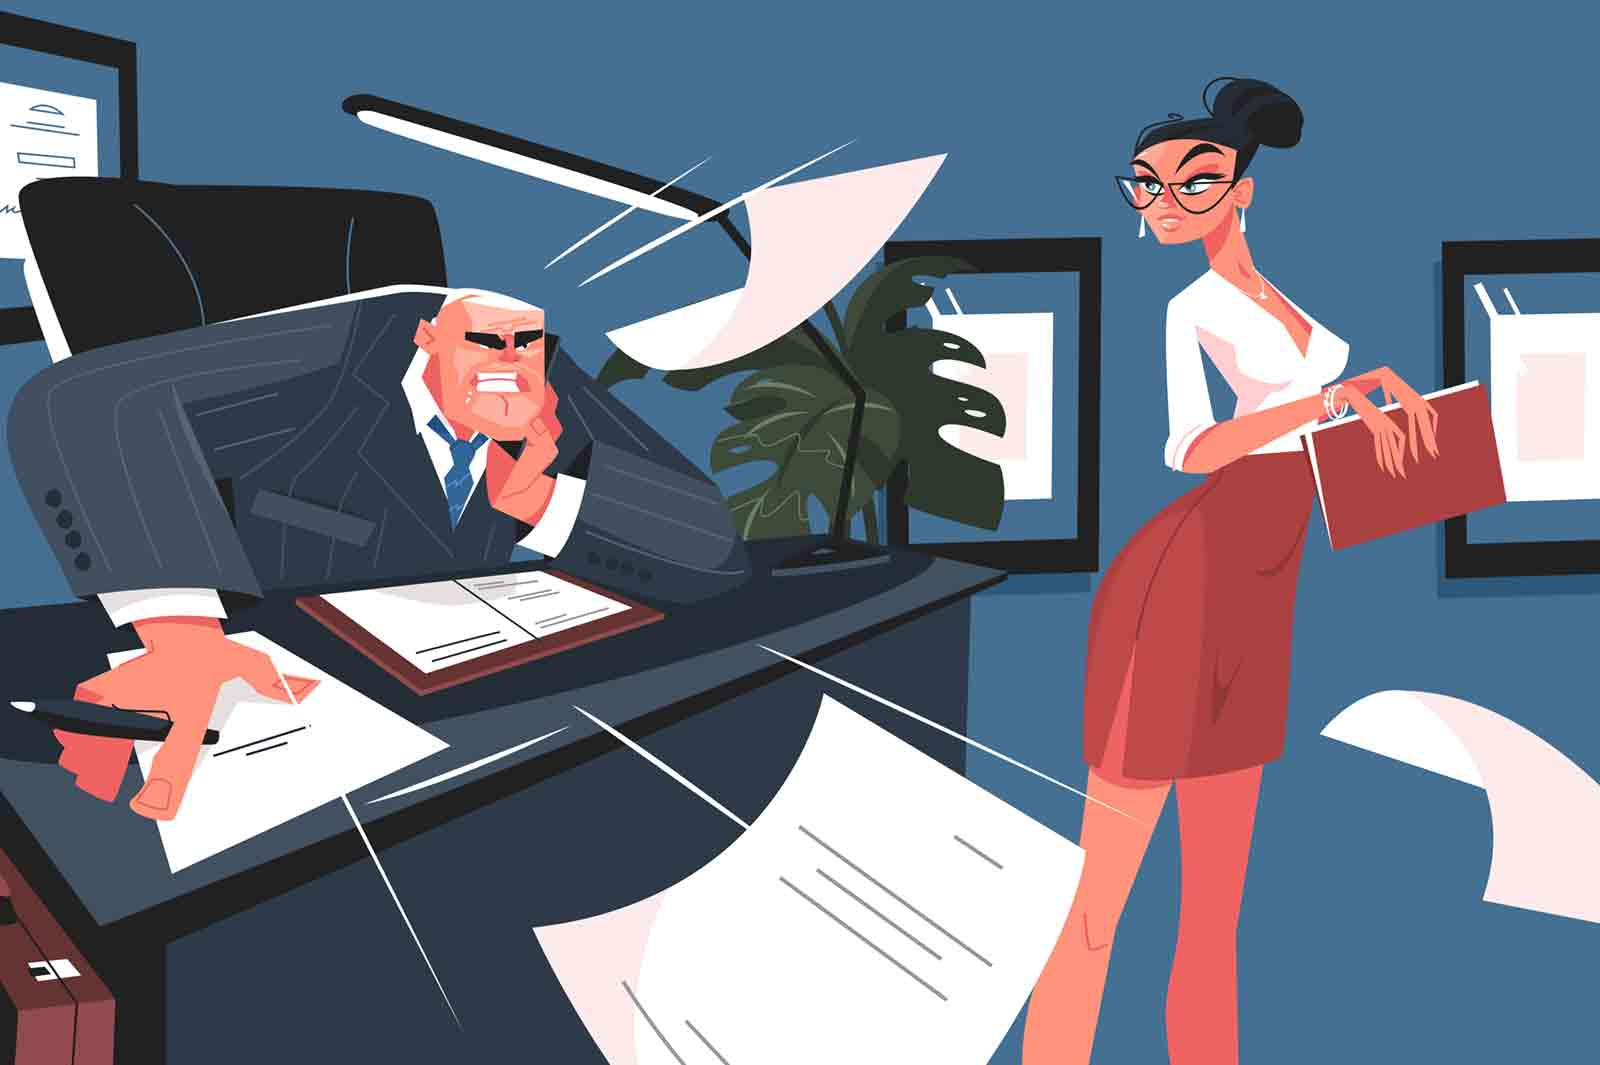 Screaming boss and secretary vector illustration. Angry man reprimands subordinate flat style design. Grumpy chief yelling at woman. Working moments scene